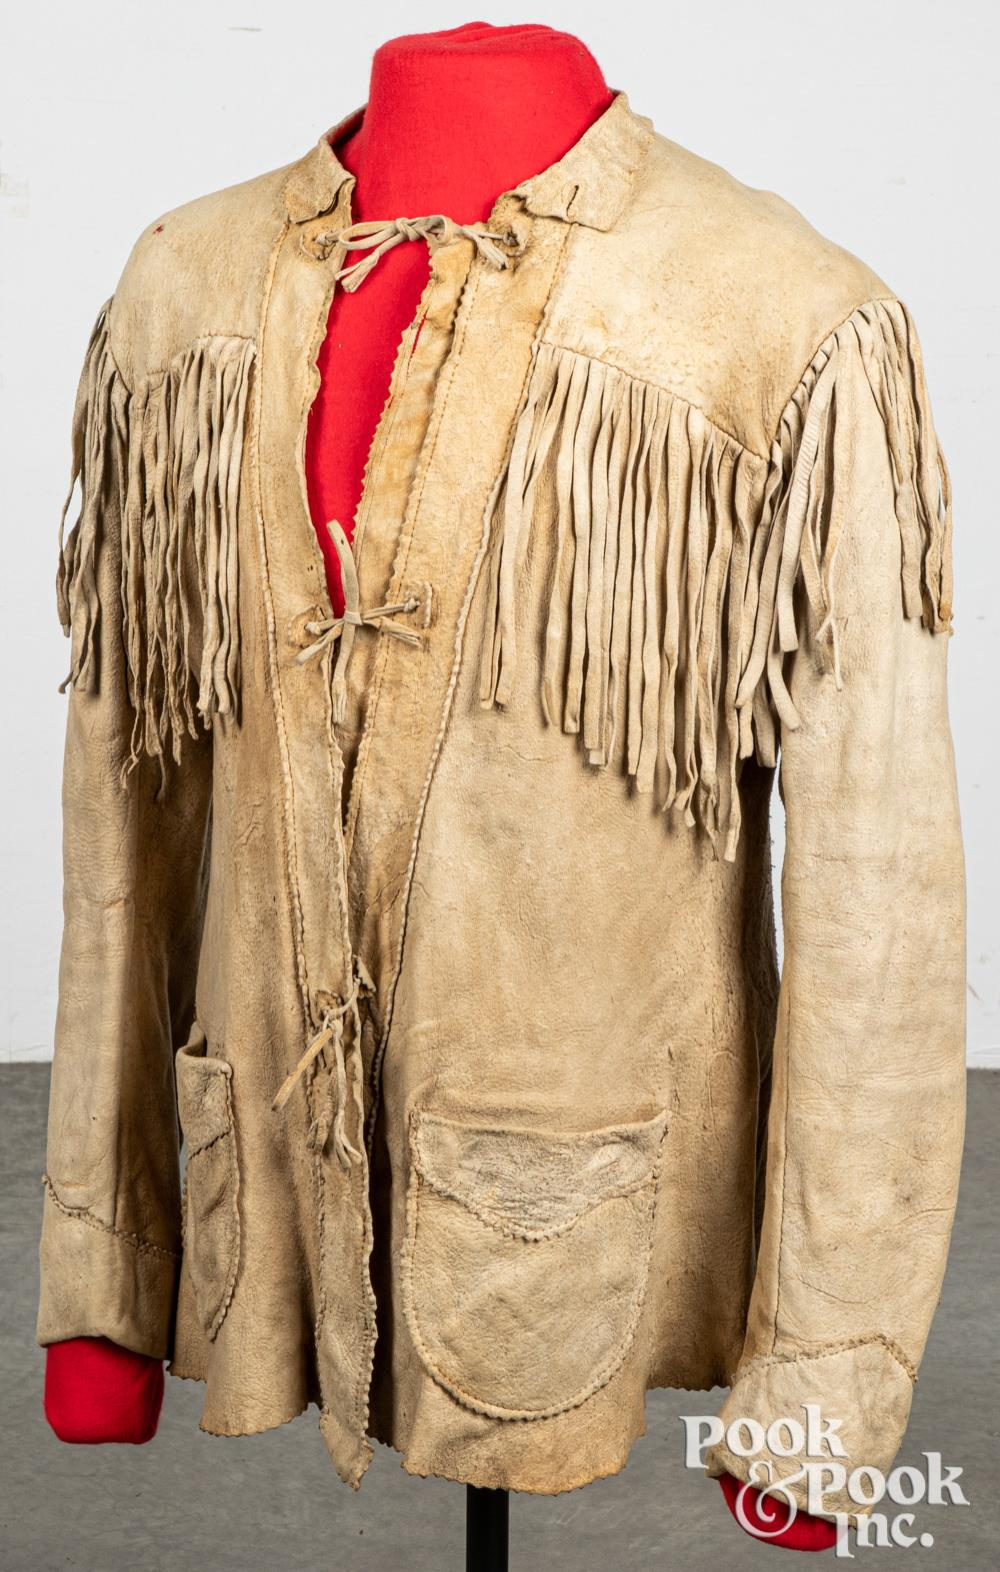 Native American Indian tanned hide scout coat